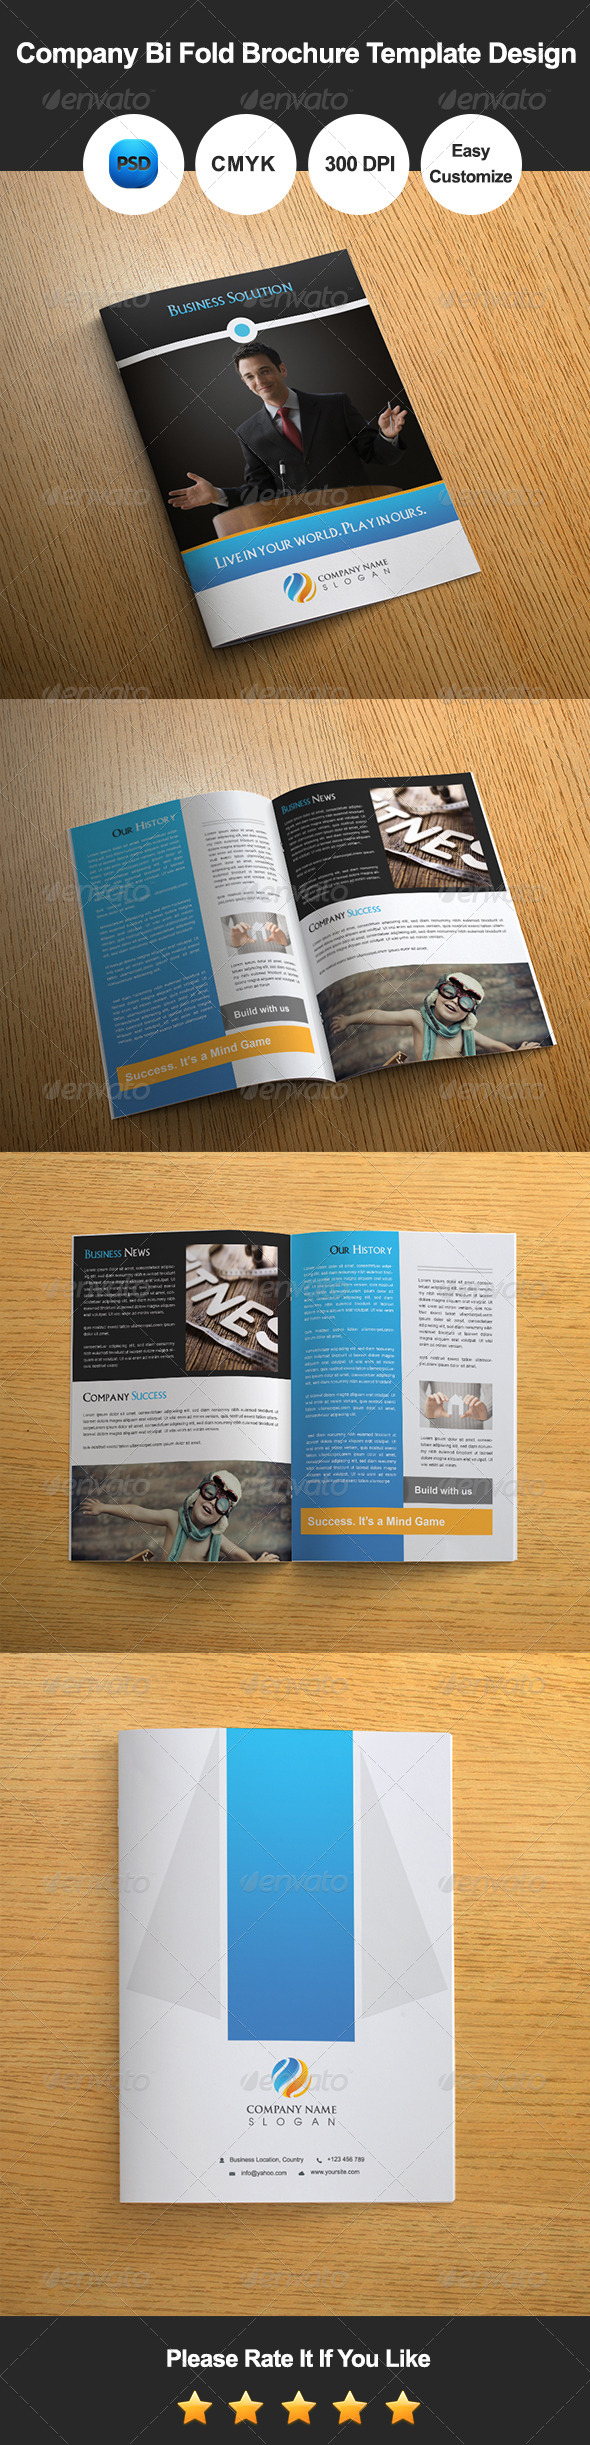 GraphicRiver Company Bi Fold Brochure Template Design 8033708